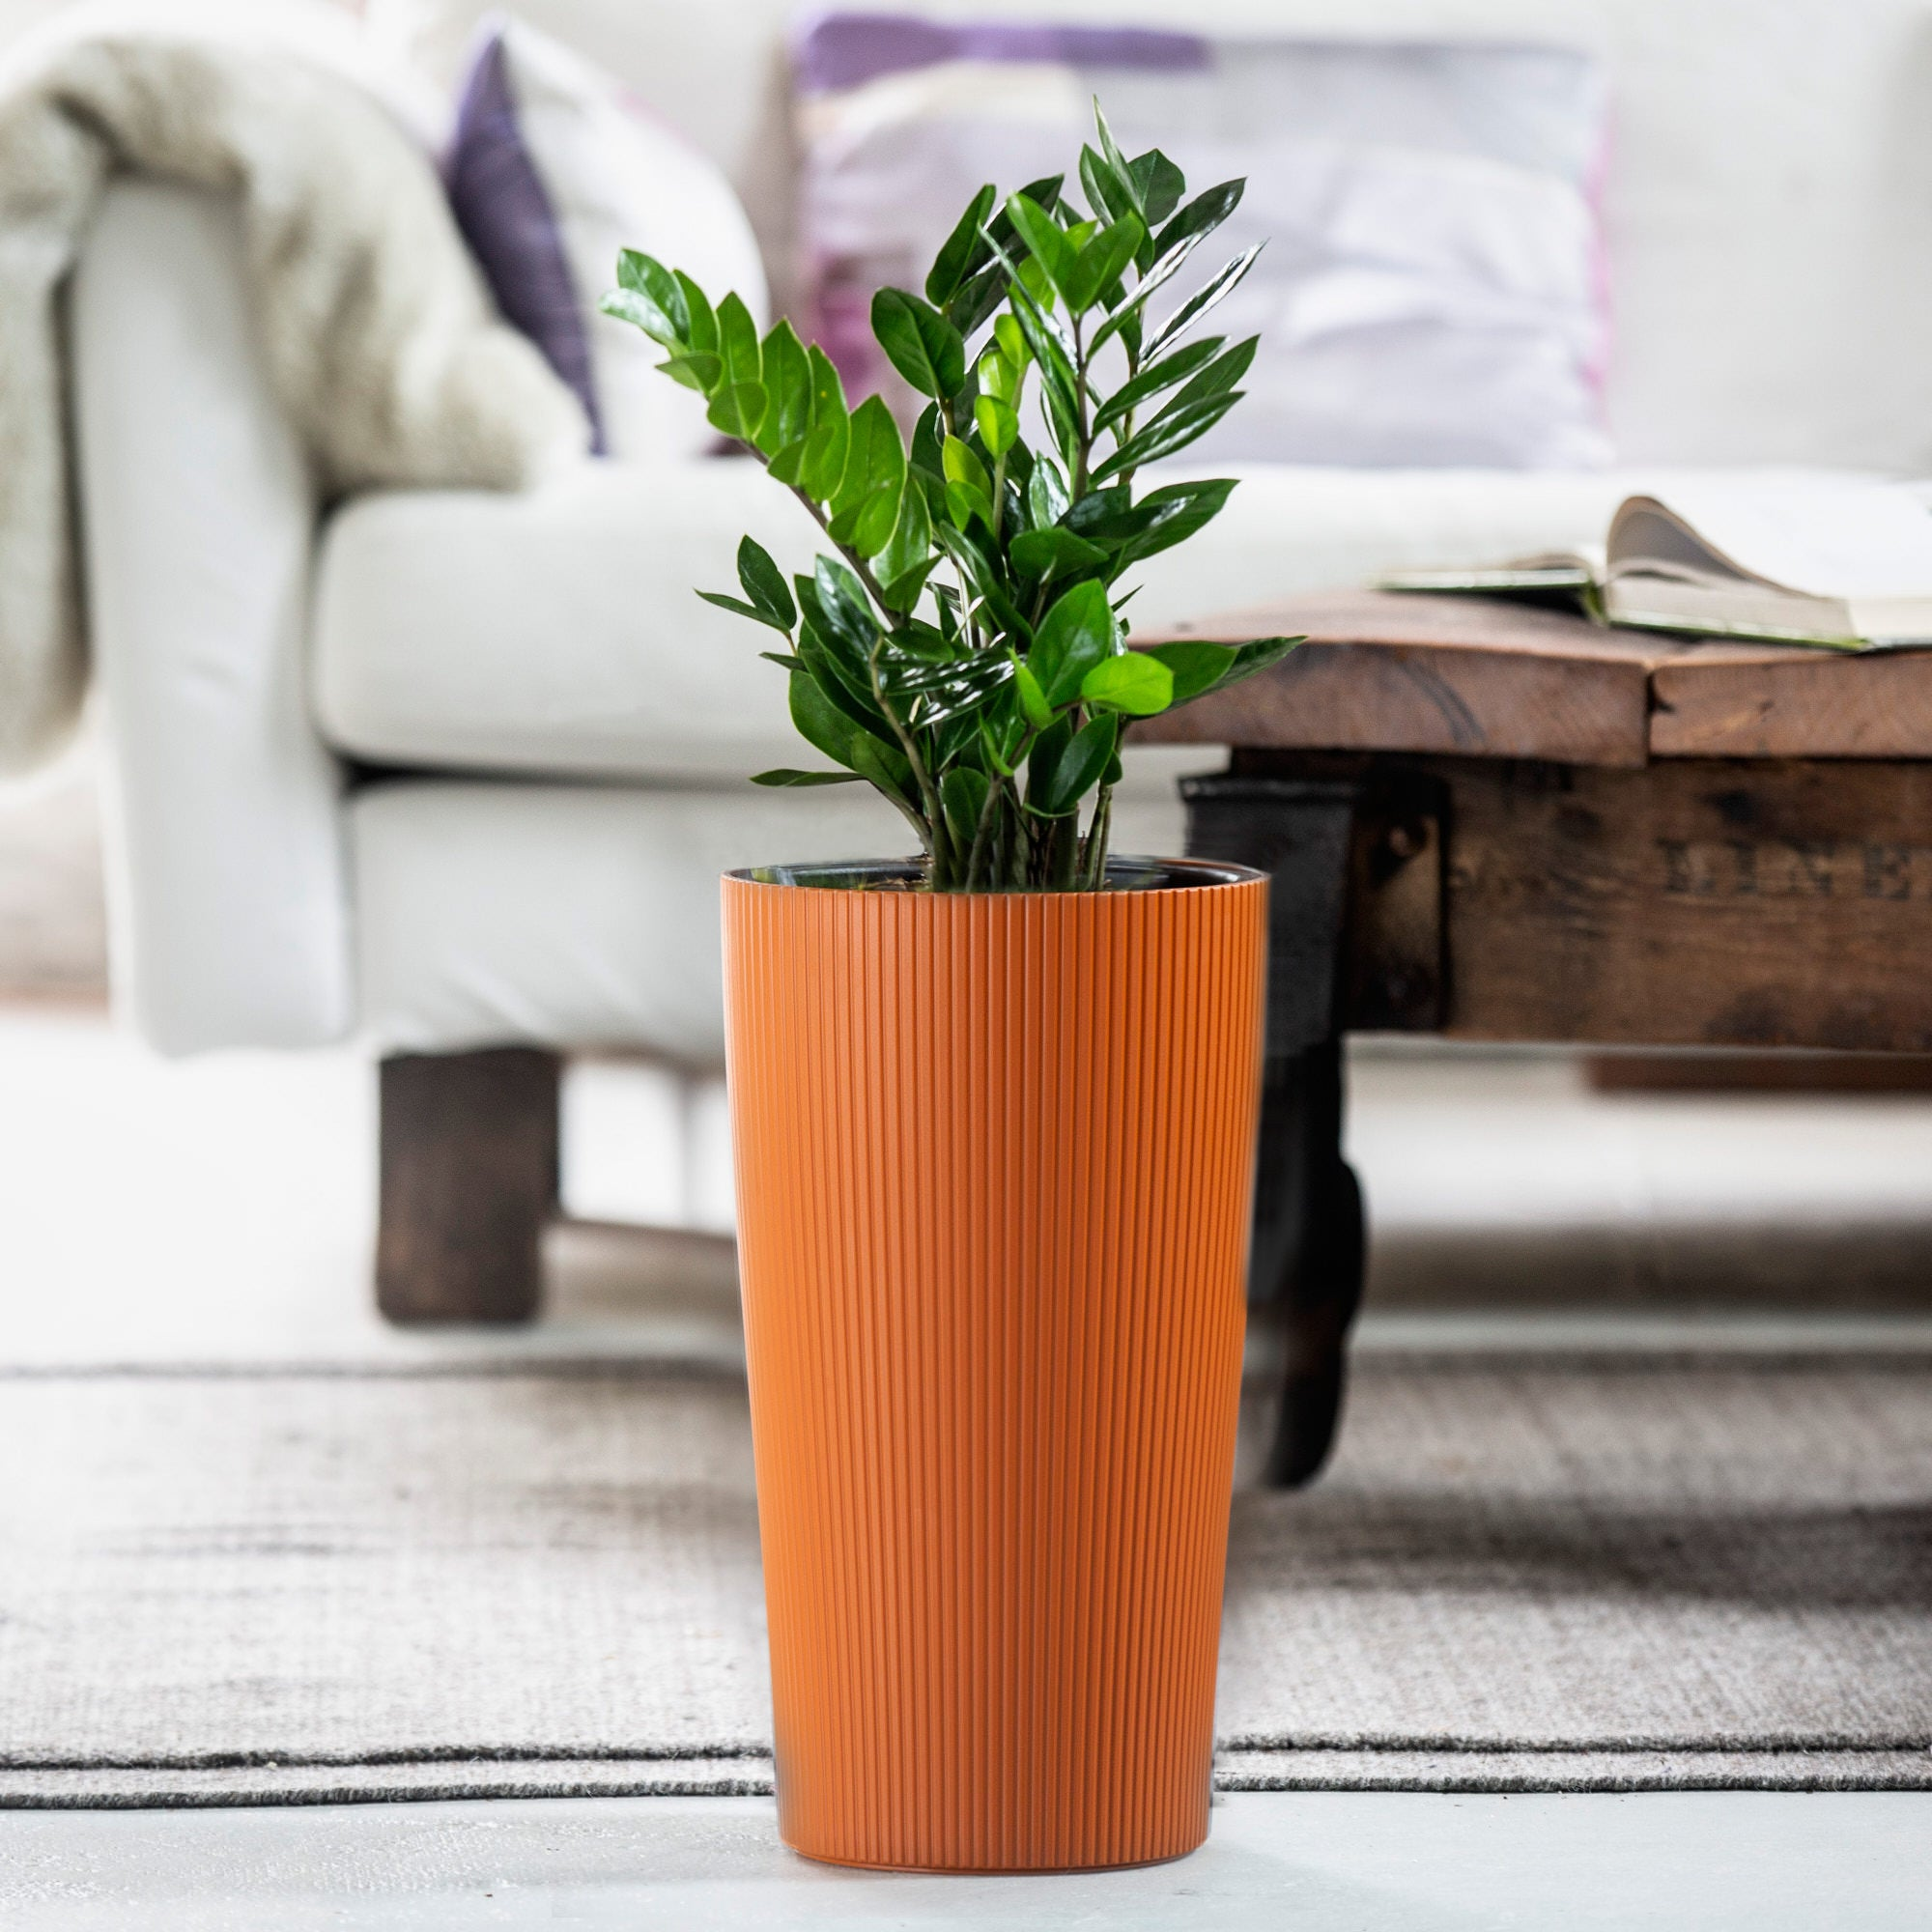 ZZ plant potted in Lechuza Cilindro orange self-watering planter - My City Plants